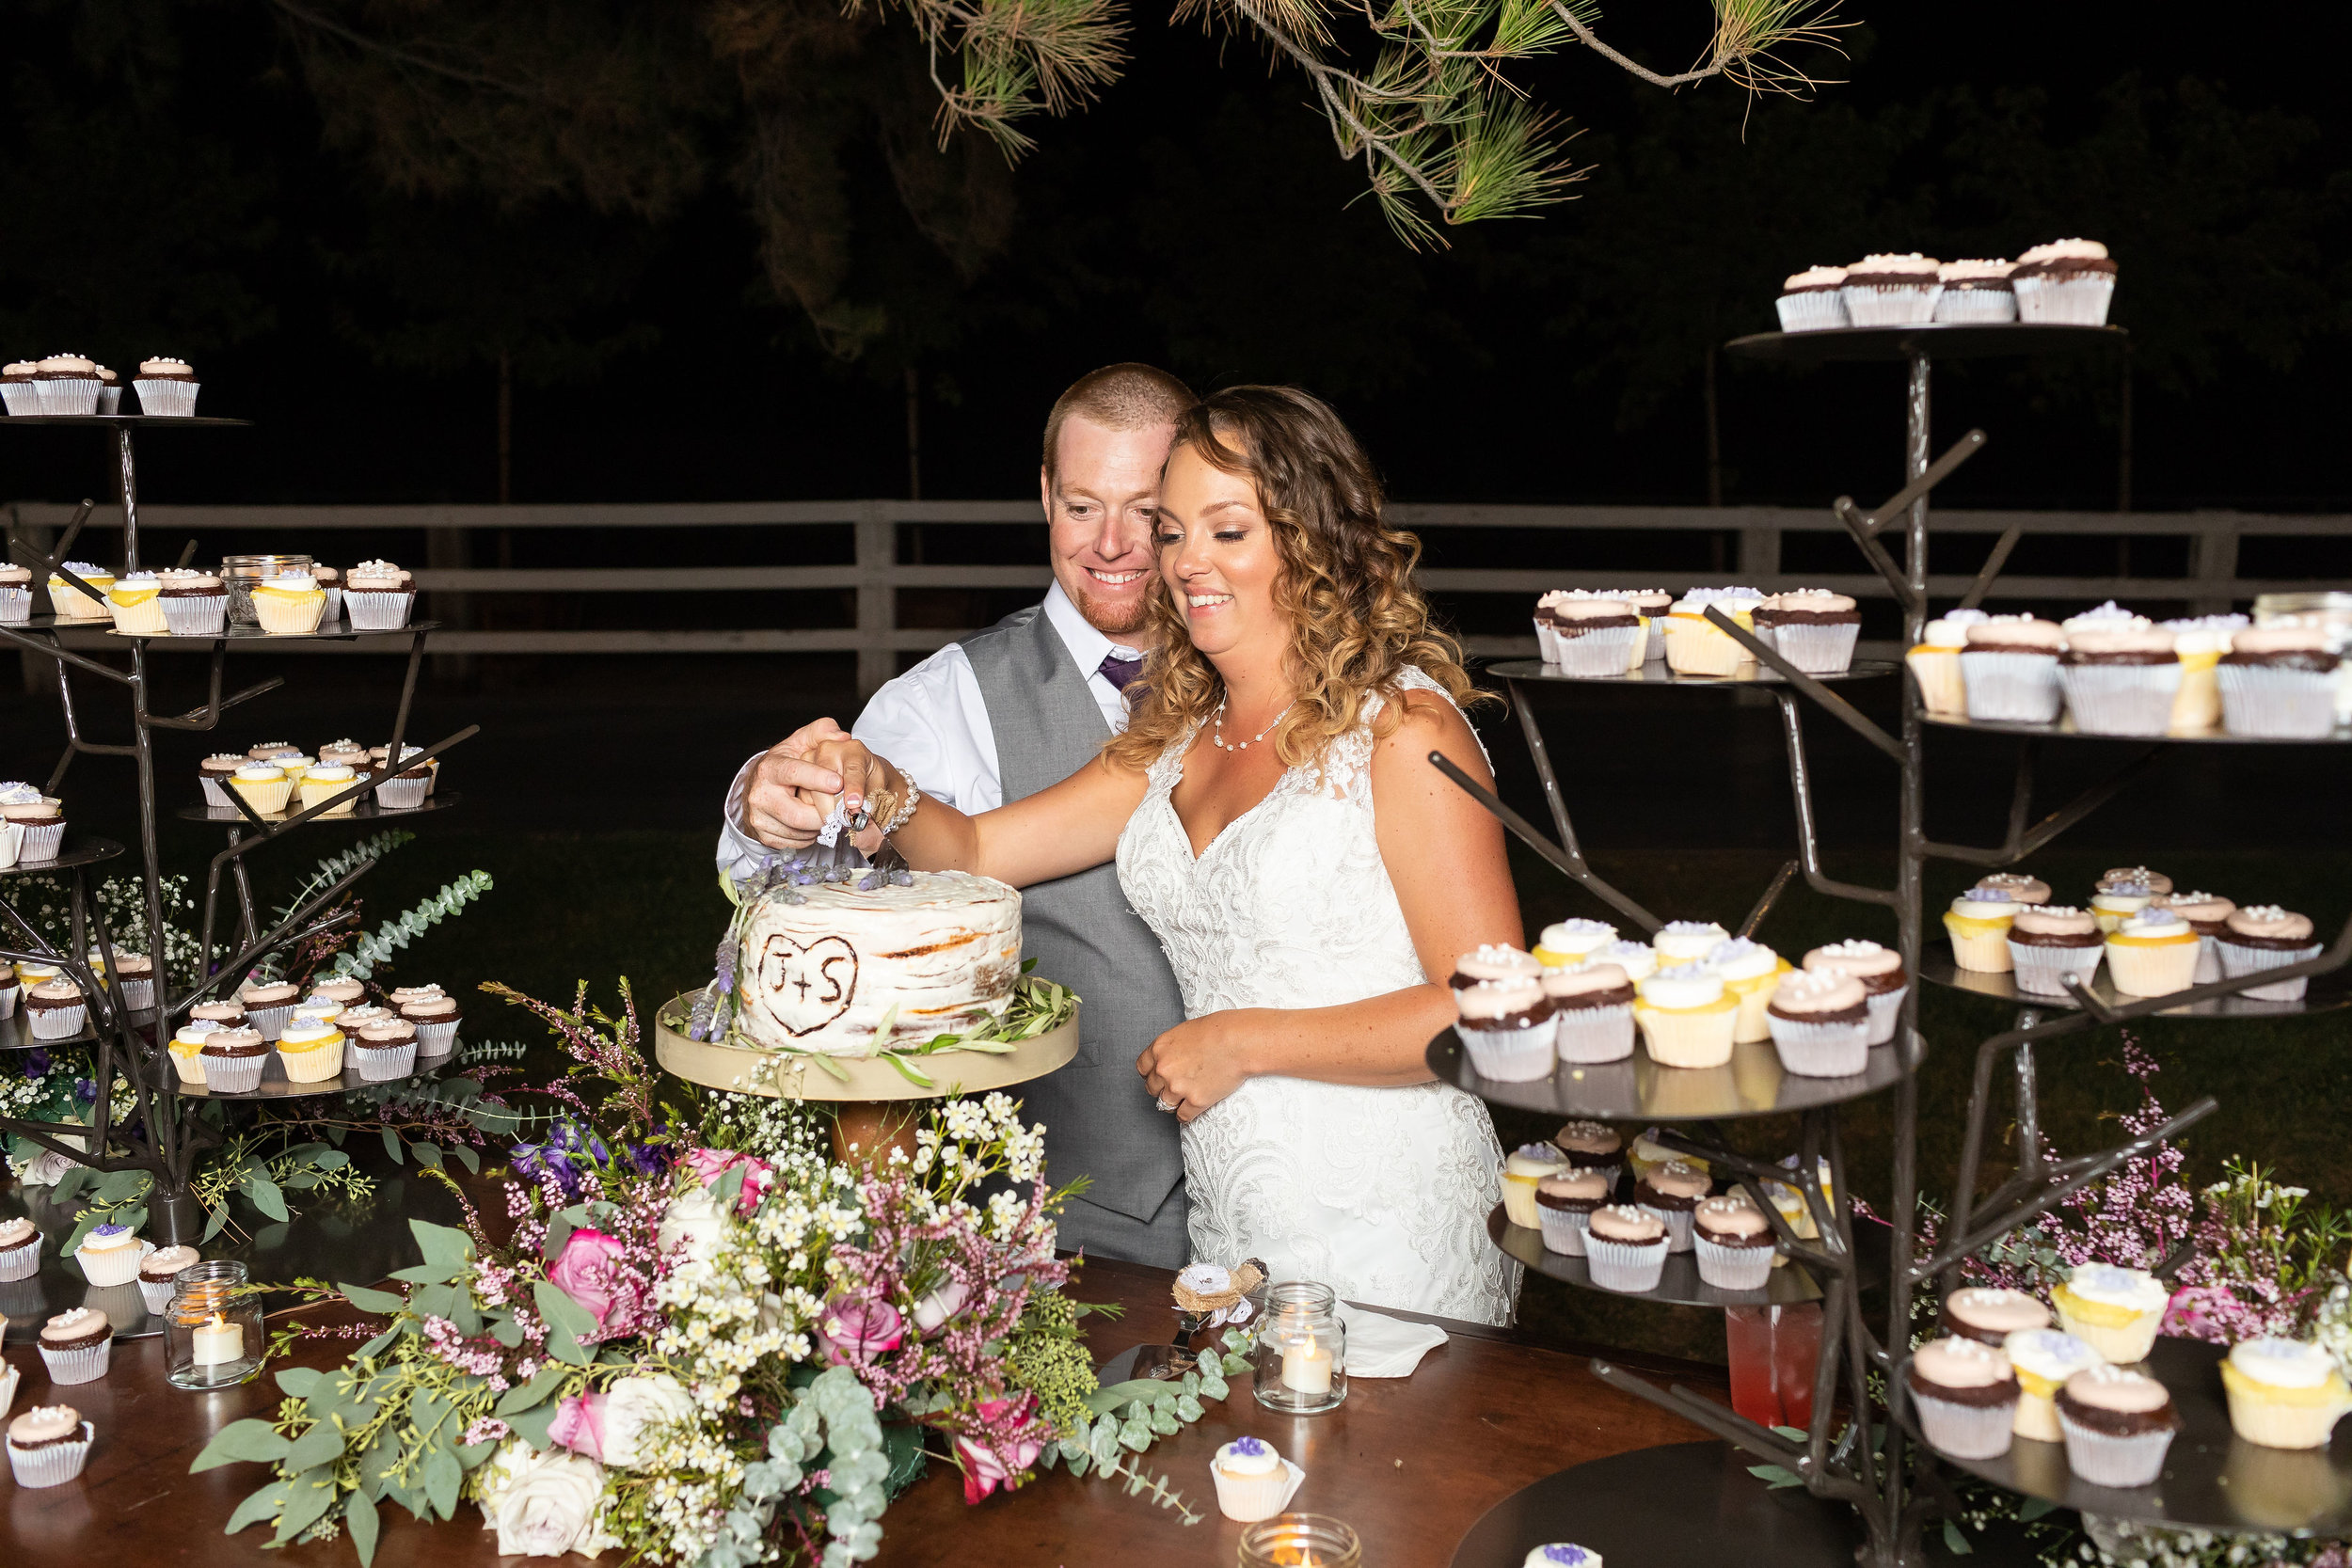 Evening cake cutting outdoor wedding reception.jpg